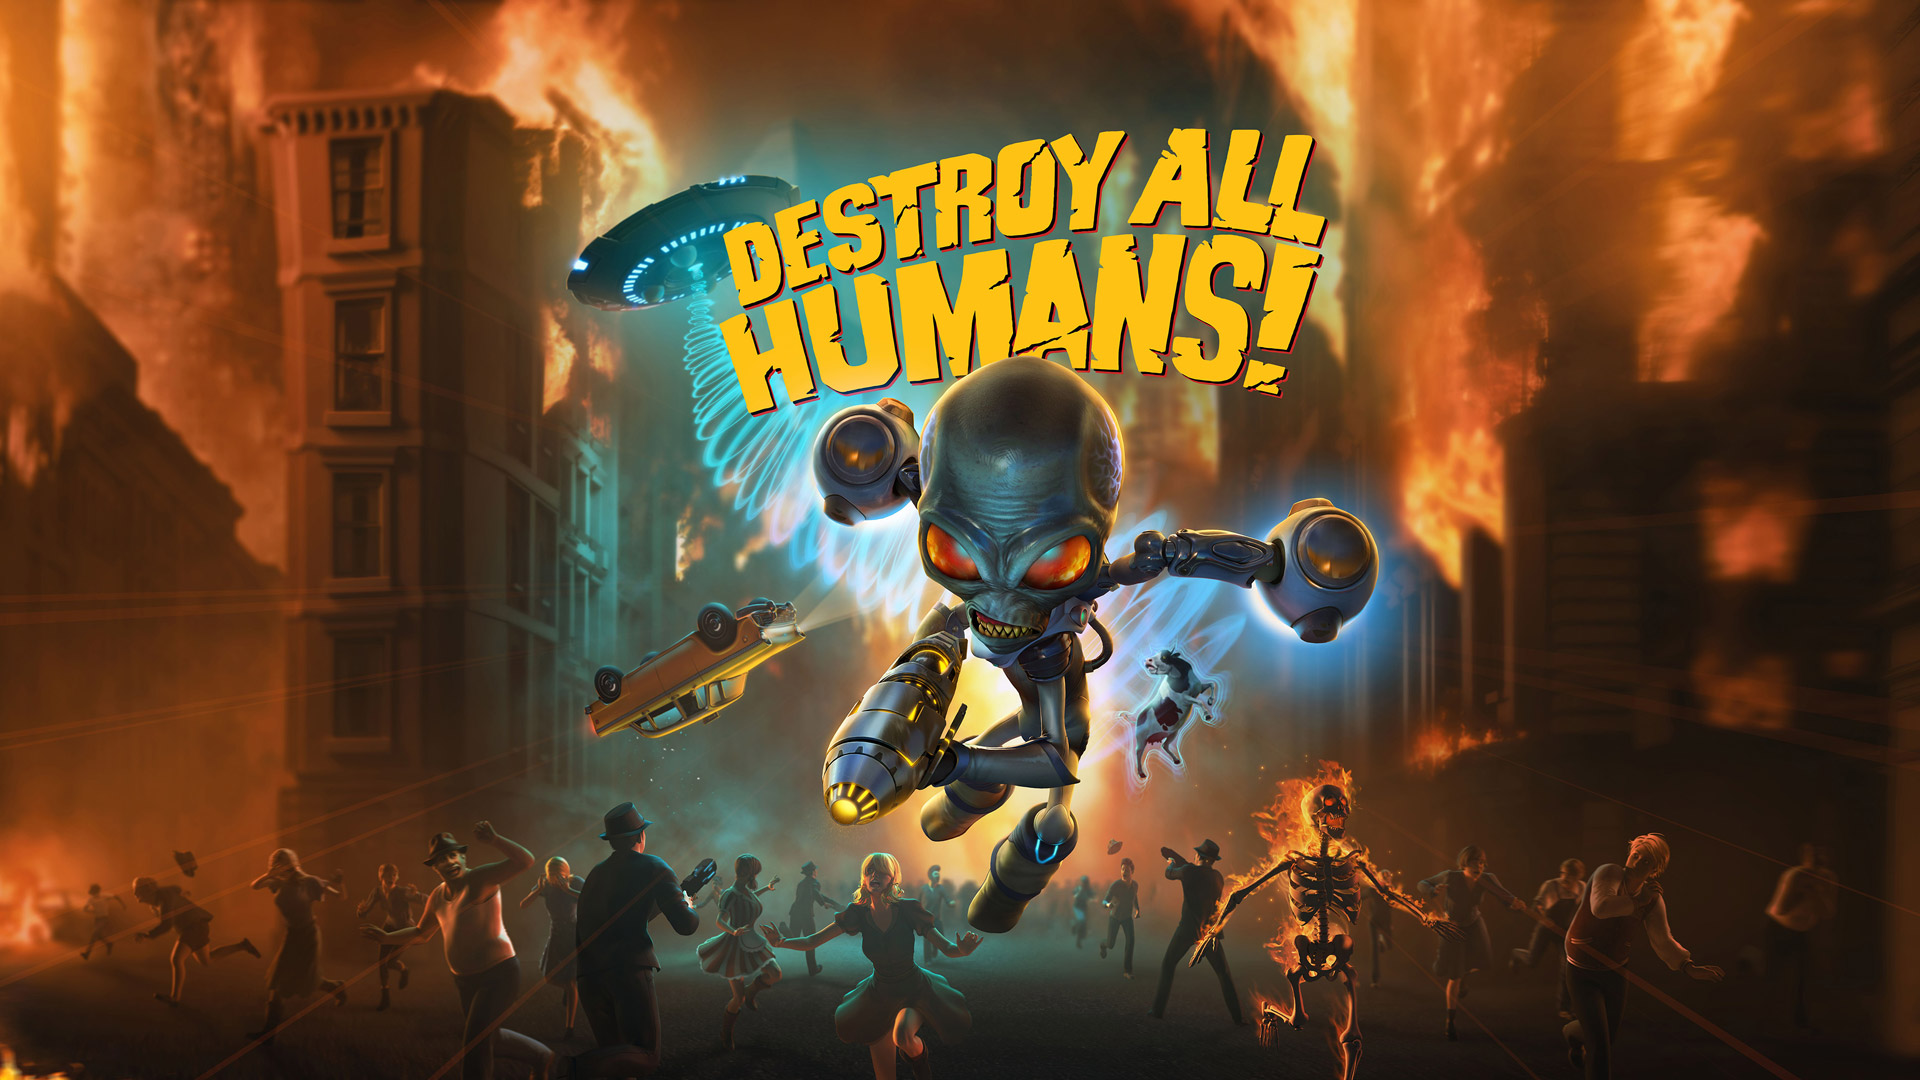 Destroy All Humans! Wallpaper in 1920x1080